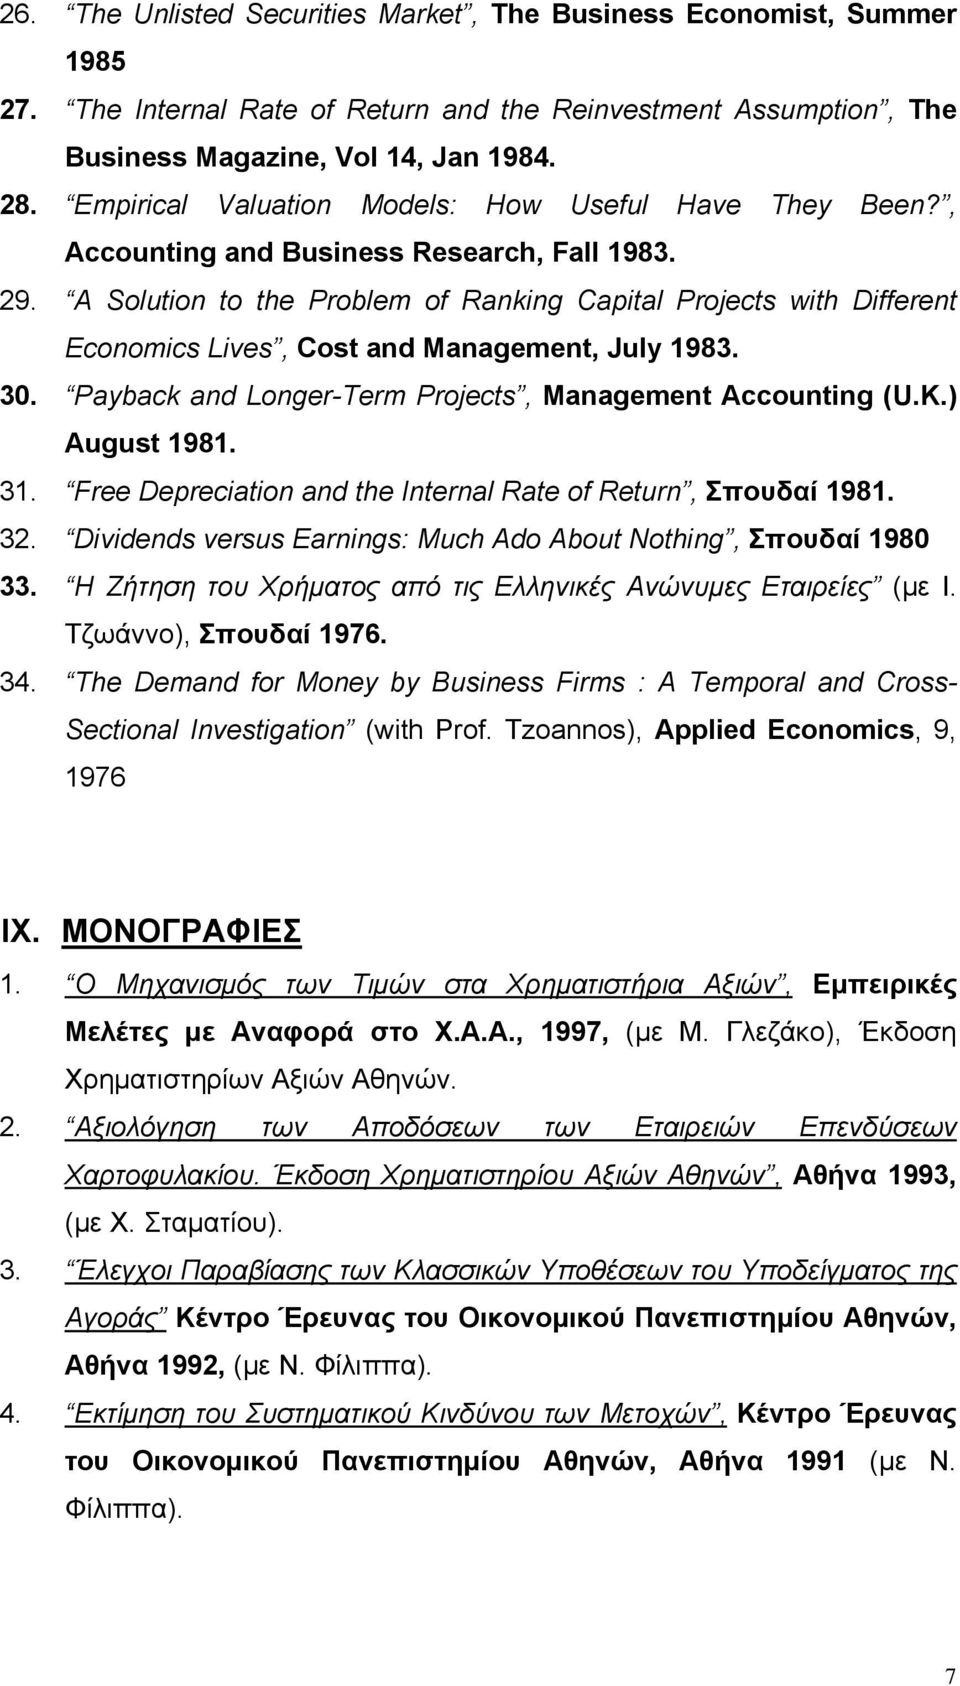 A Solution to the Problem of Ranking Capital Projects with Different Economics Lives, Cost and Management, July 1983. 30. Payback and Longer-Term Projects, Management Accounting (U.K.) August 1981.